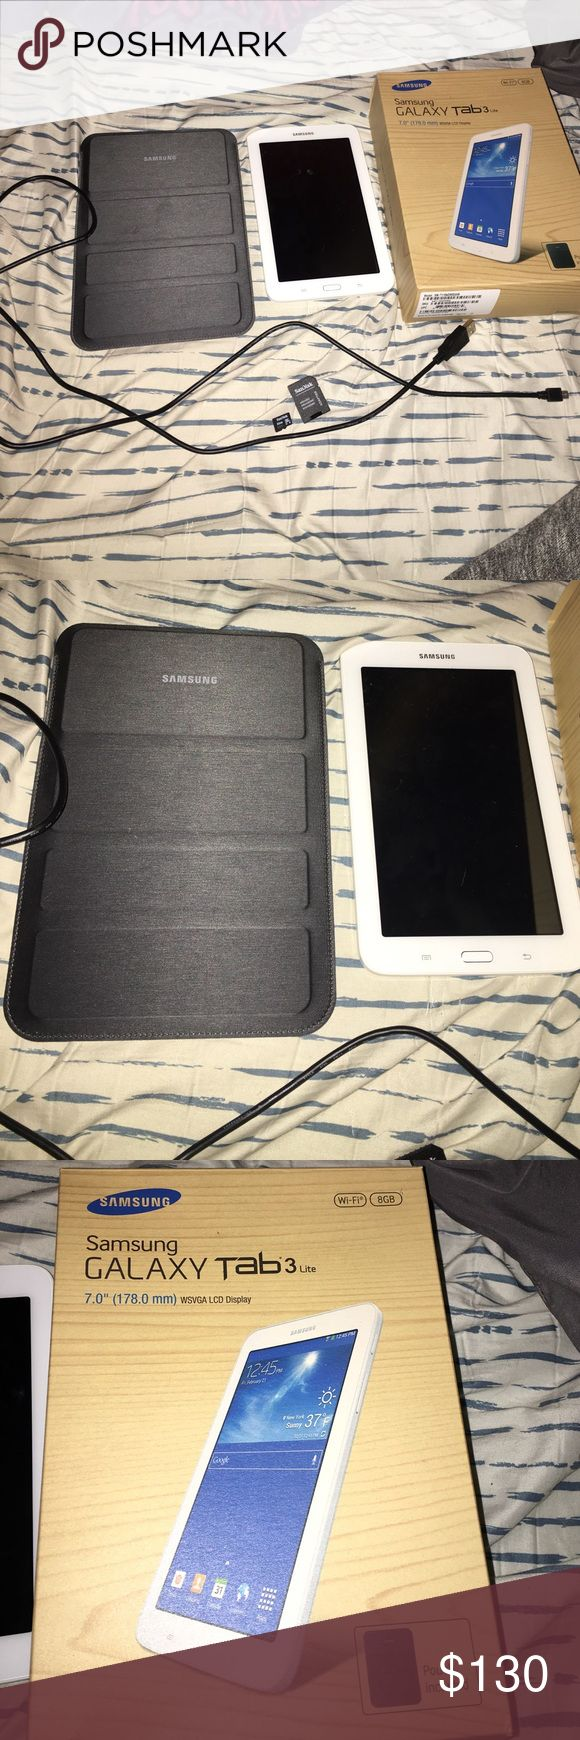 Samsung galaxy tablet 3 Used a handful of times, in great condition. Comes with charge, a case, 32gb sd card, and original box. Accessories